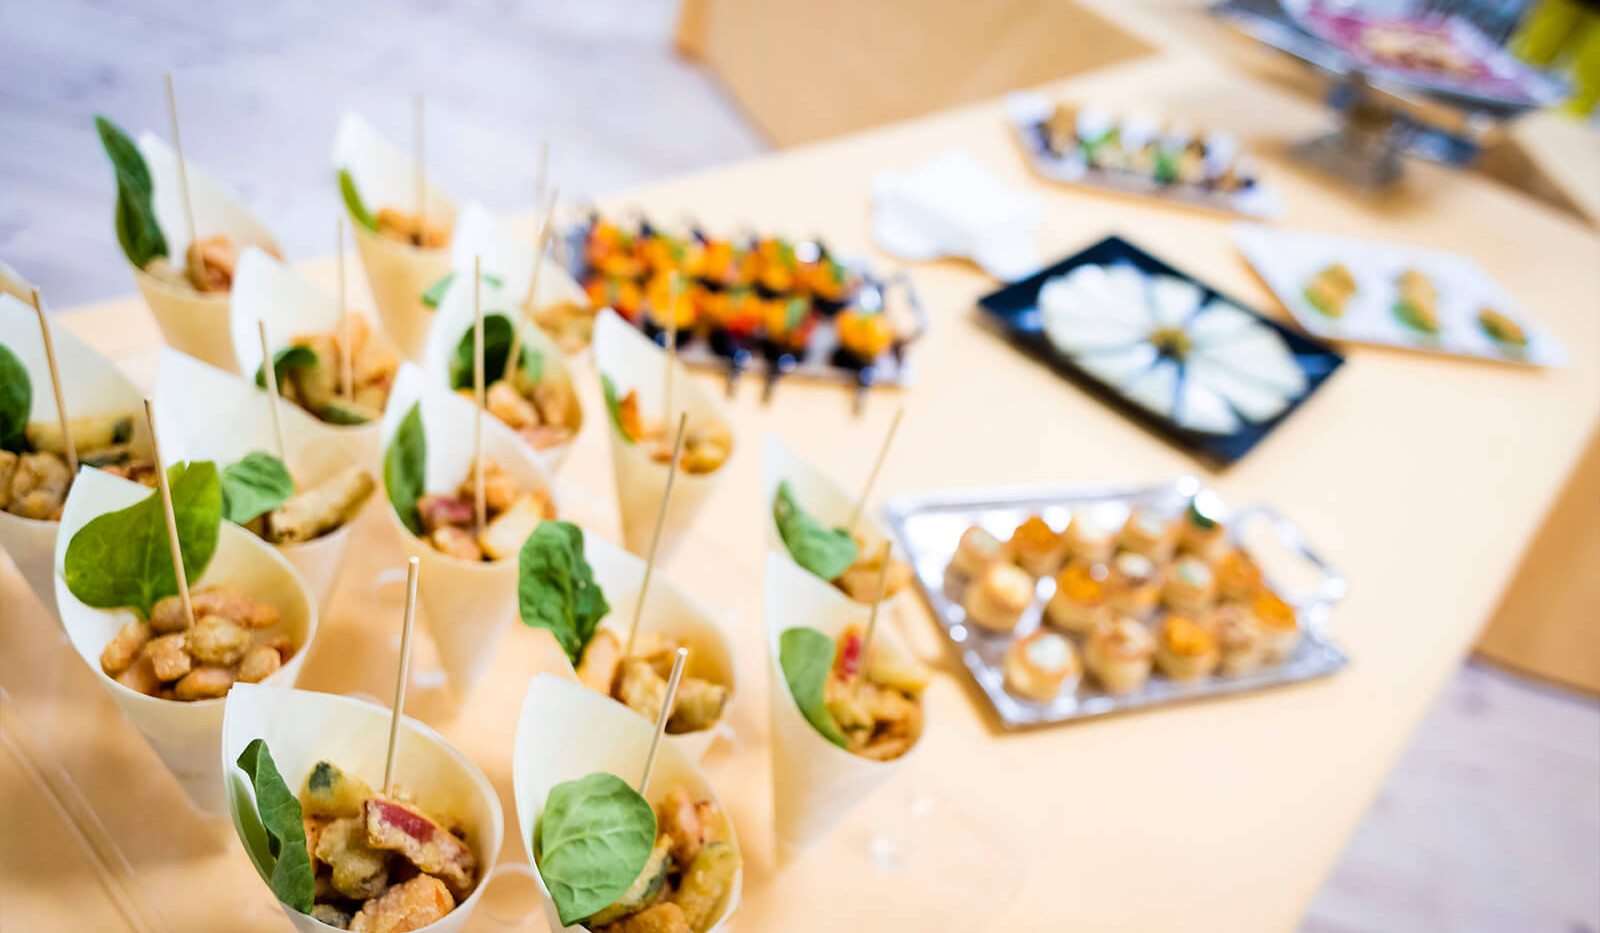 Sample of food photography at corporate event